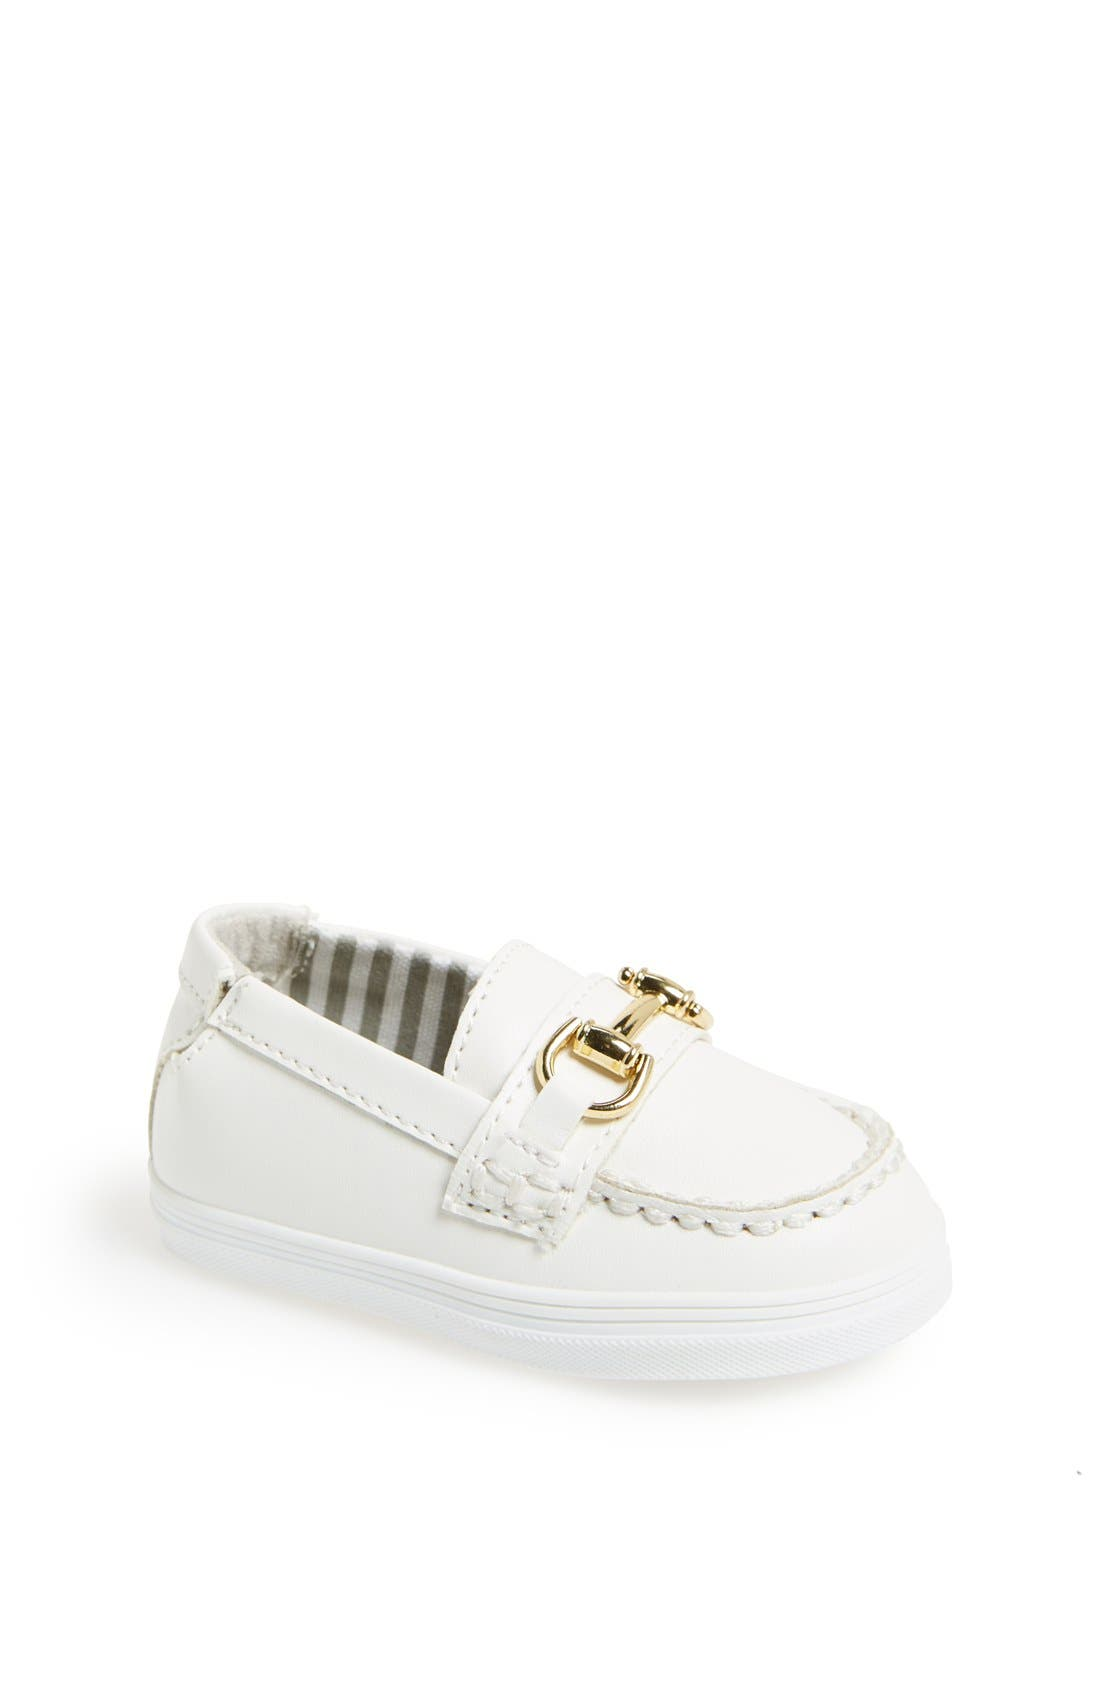 Alternate Image 1 Selected - Cole Haan 'Mini Cory' Slip-On (Baby)